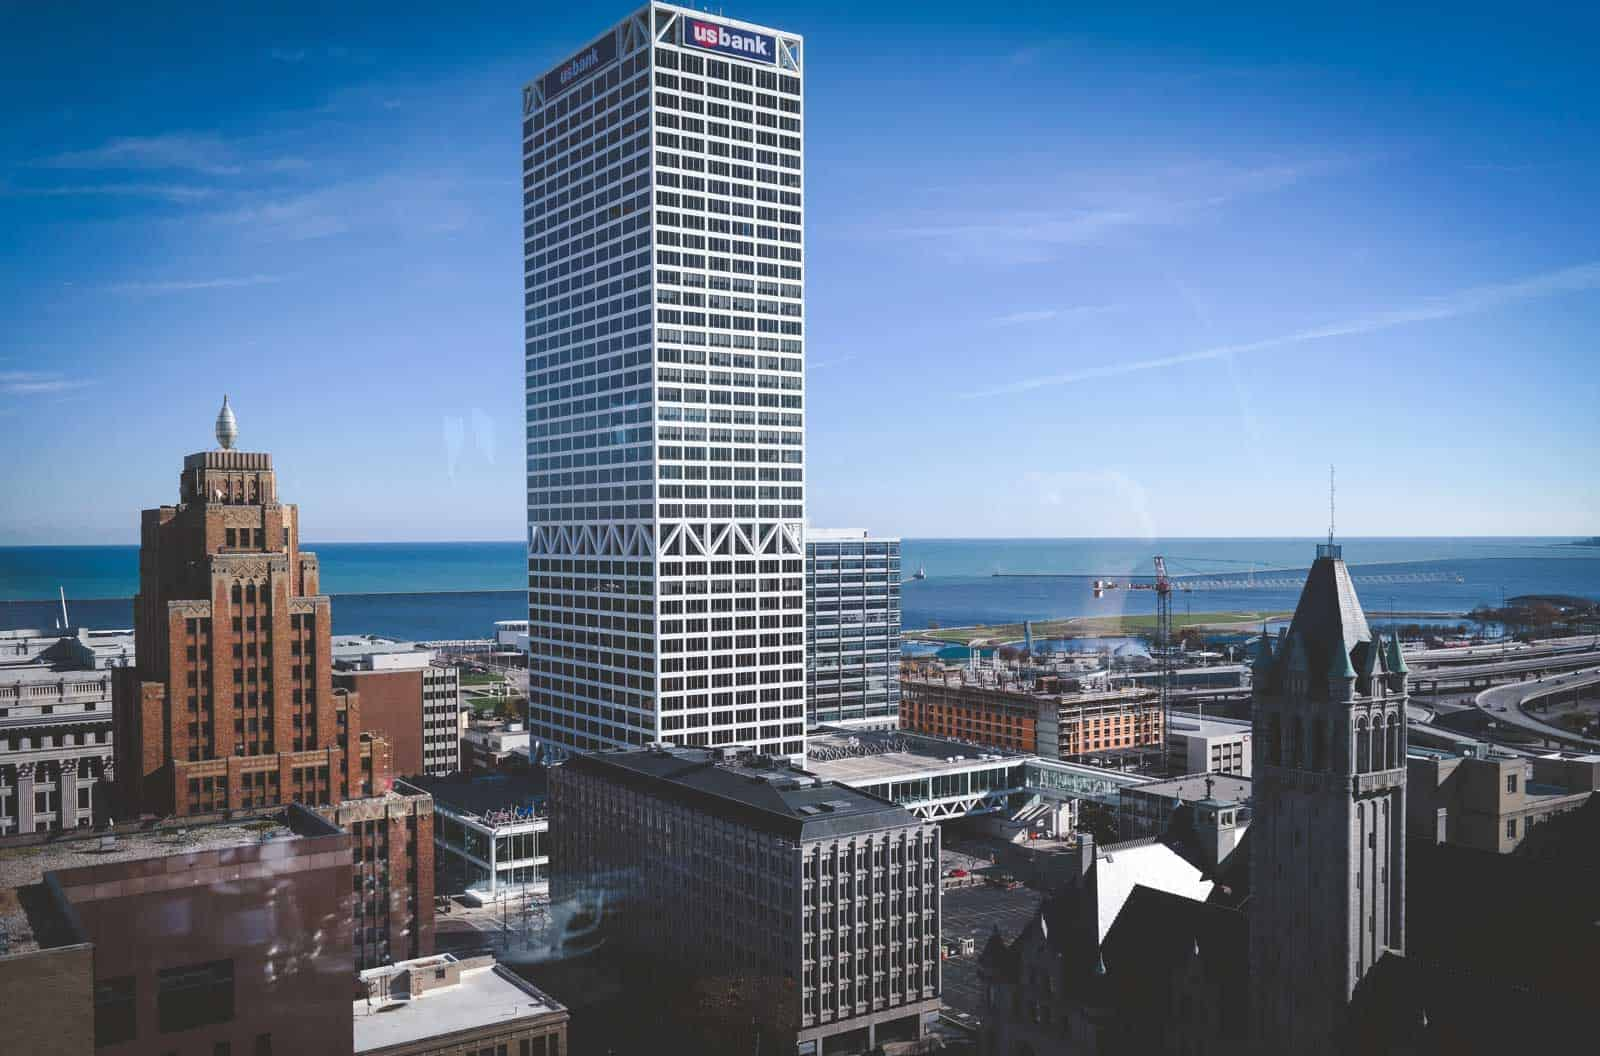 The best views from the Pfister Hotel in Milwaukee